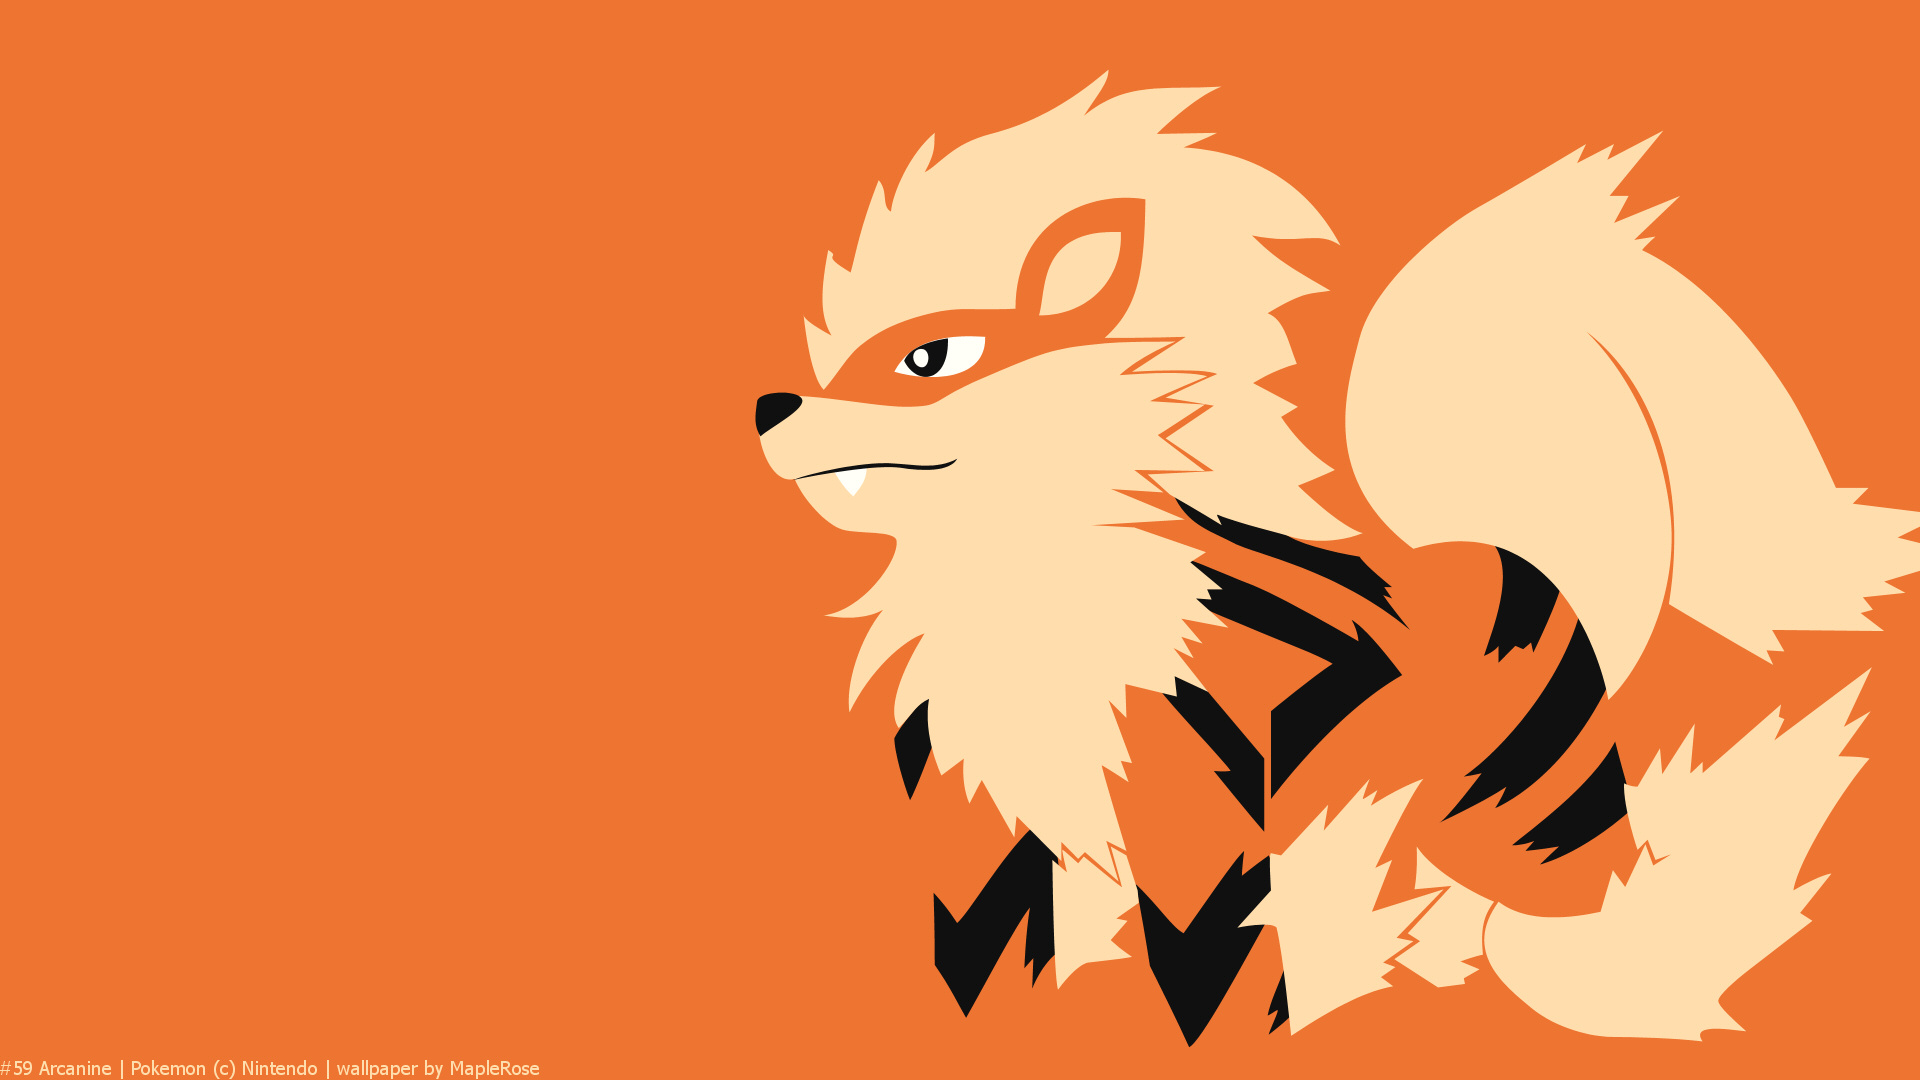 Must see Wallpaper Horse Minimalist - 59arcanine1920x1080  Collection_604444.jpg